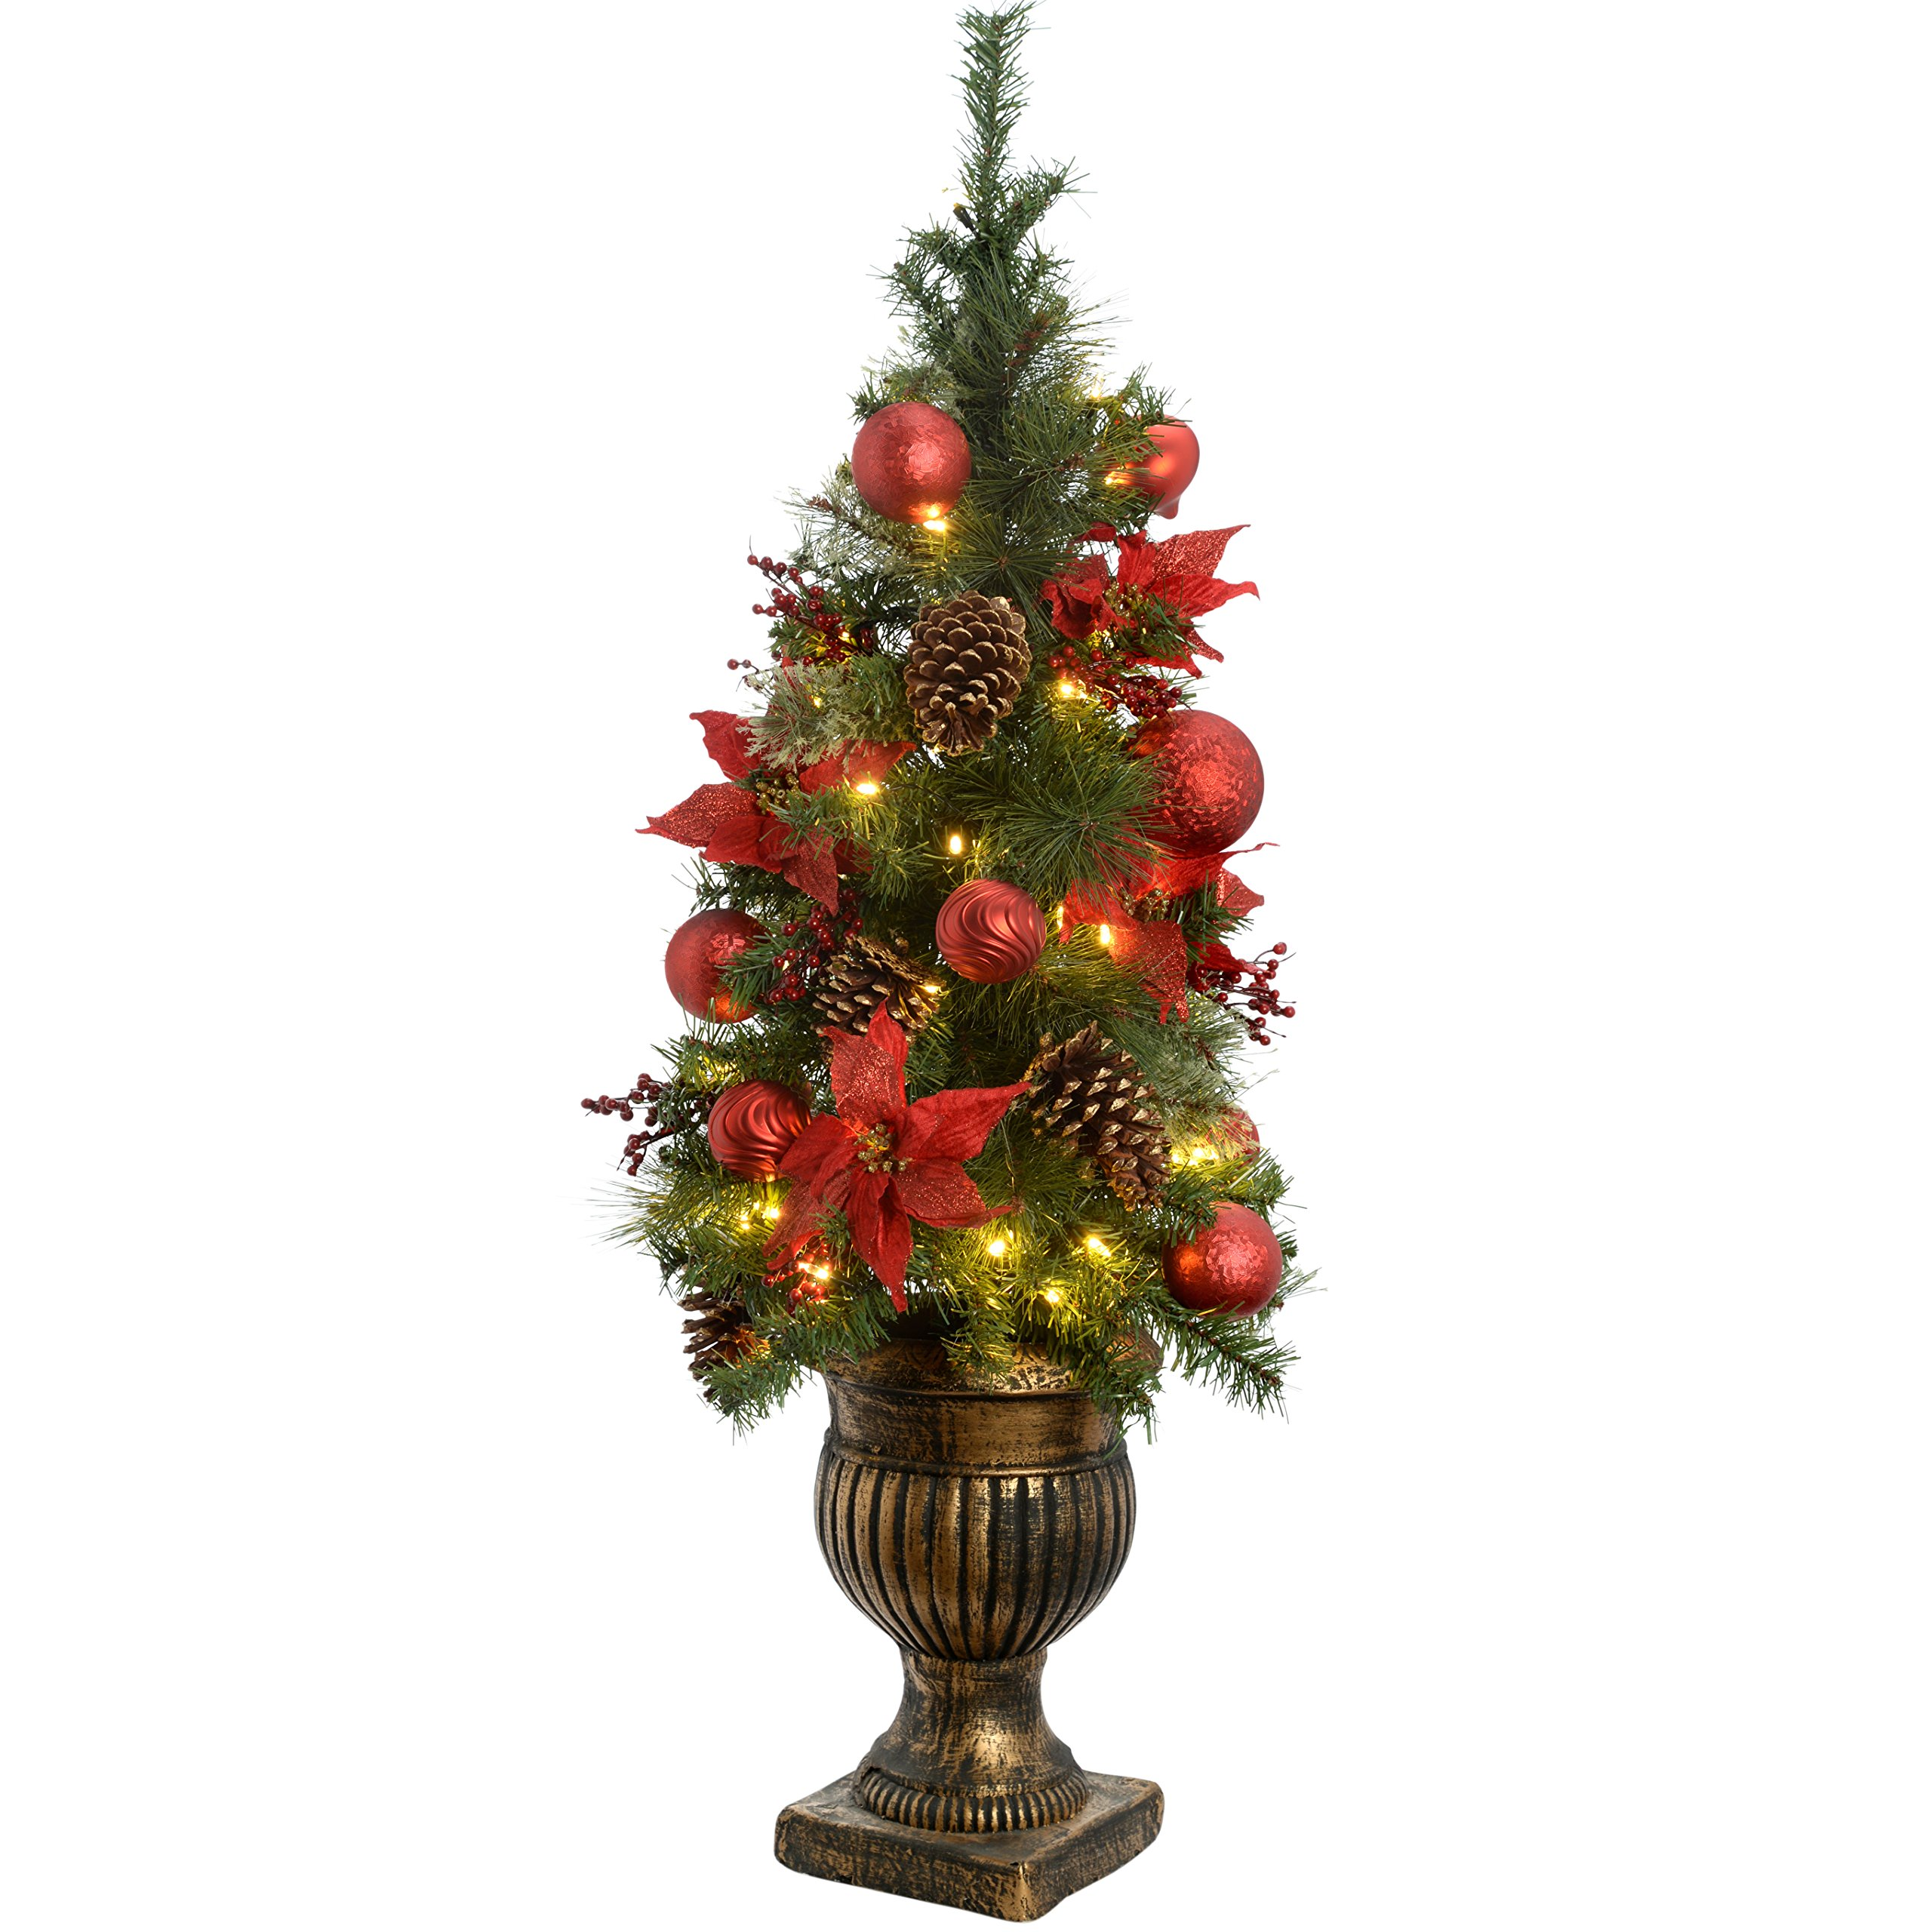 Werchristmas 4 Ft Pre Lit Potted Christmas Tree With 50